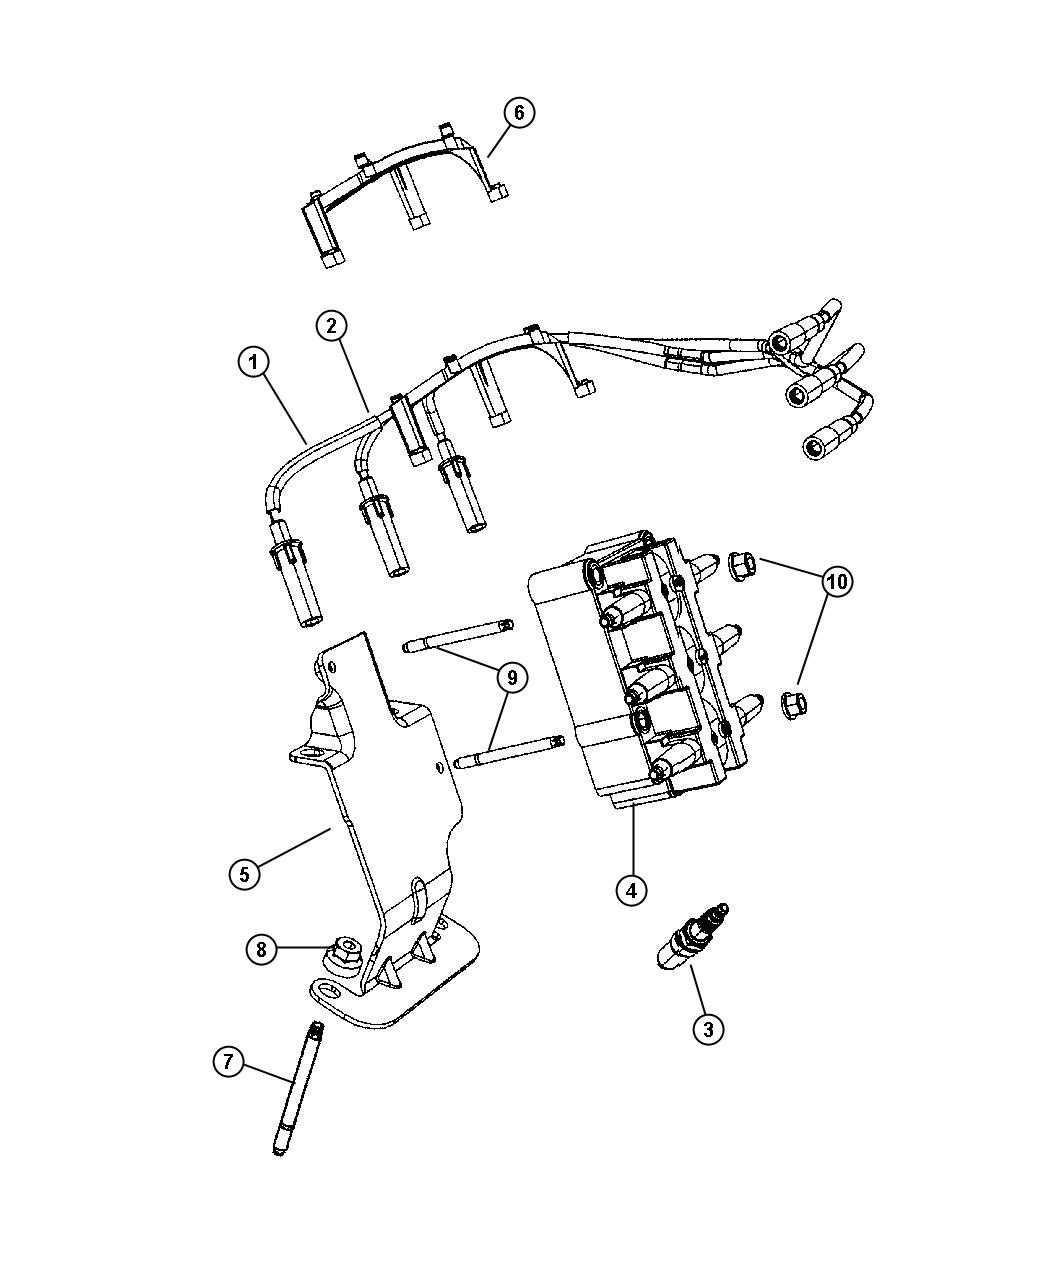 1999 Dodge 46re Transmission Wiring Diagram